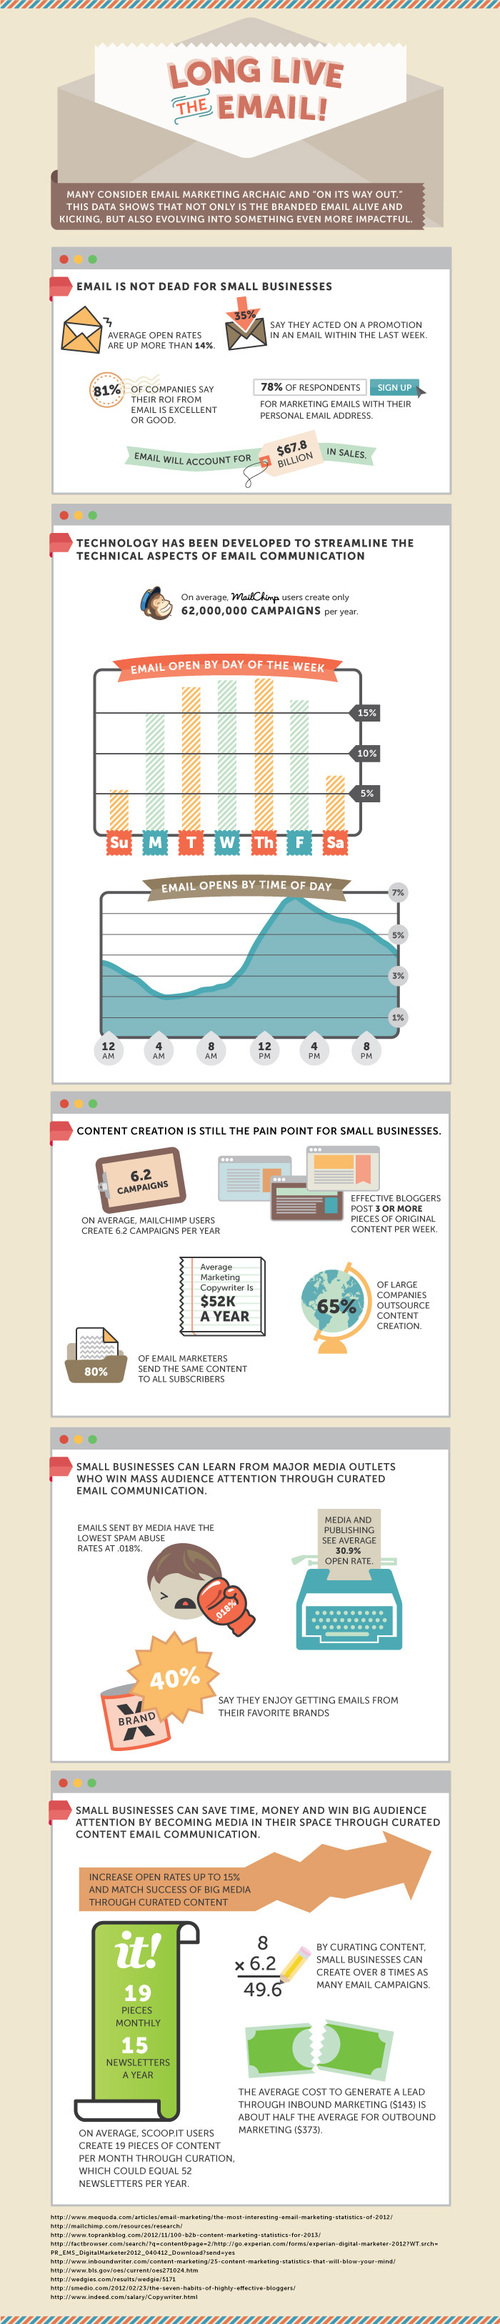 Why Email Is Still Alive Infographic - SocialTimes